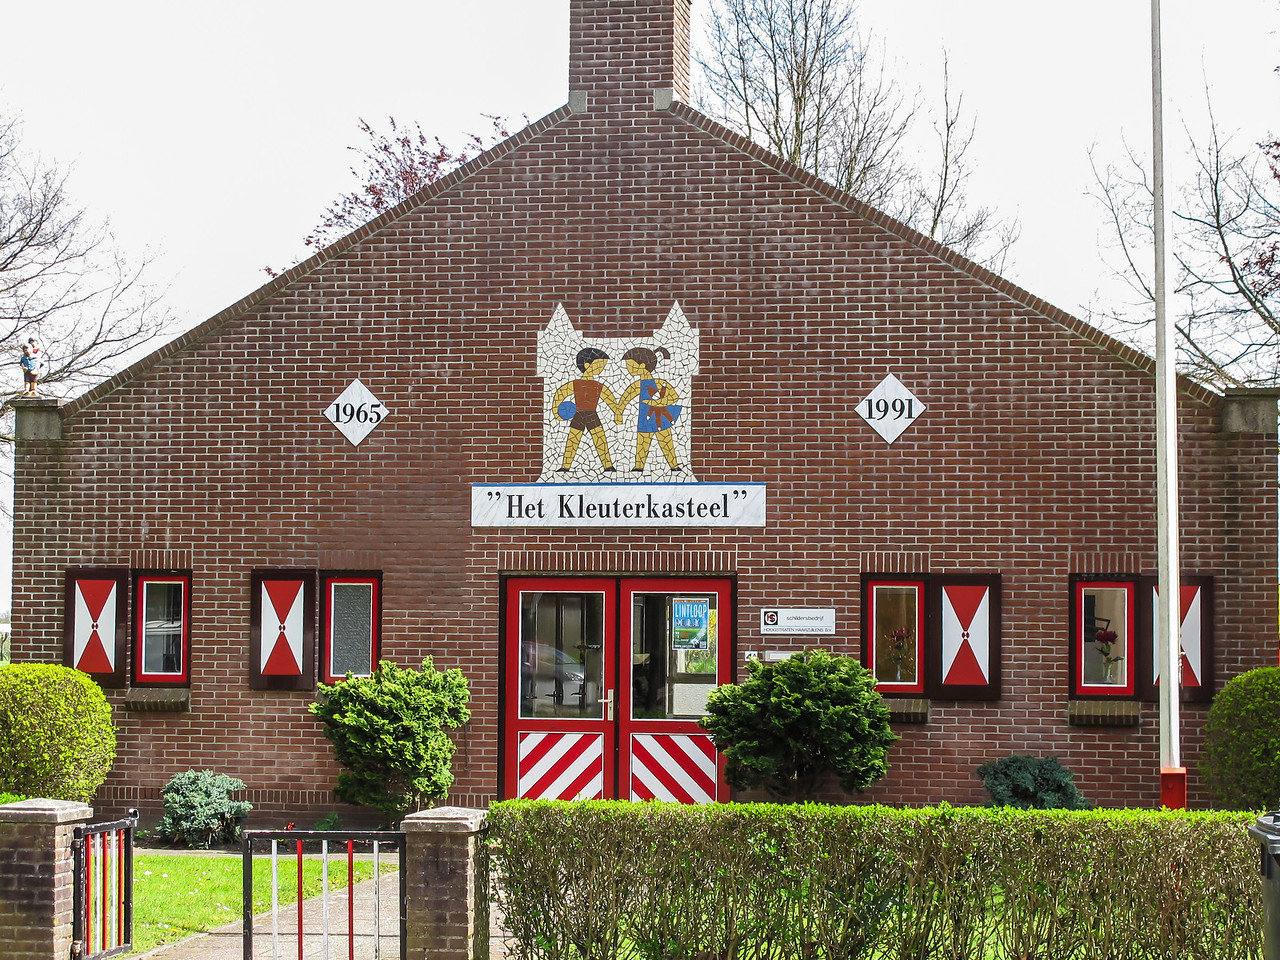 An attractive-looking elementary school in a small Dutch town.  Most all of the homes and businesses had the same type of red and white decorations.